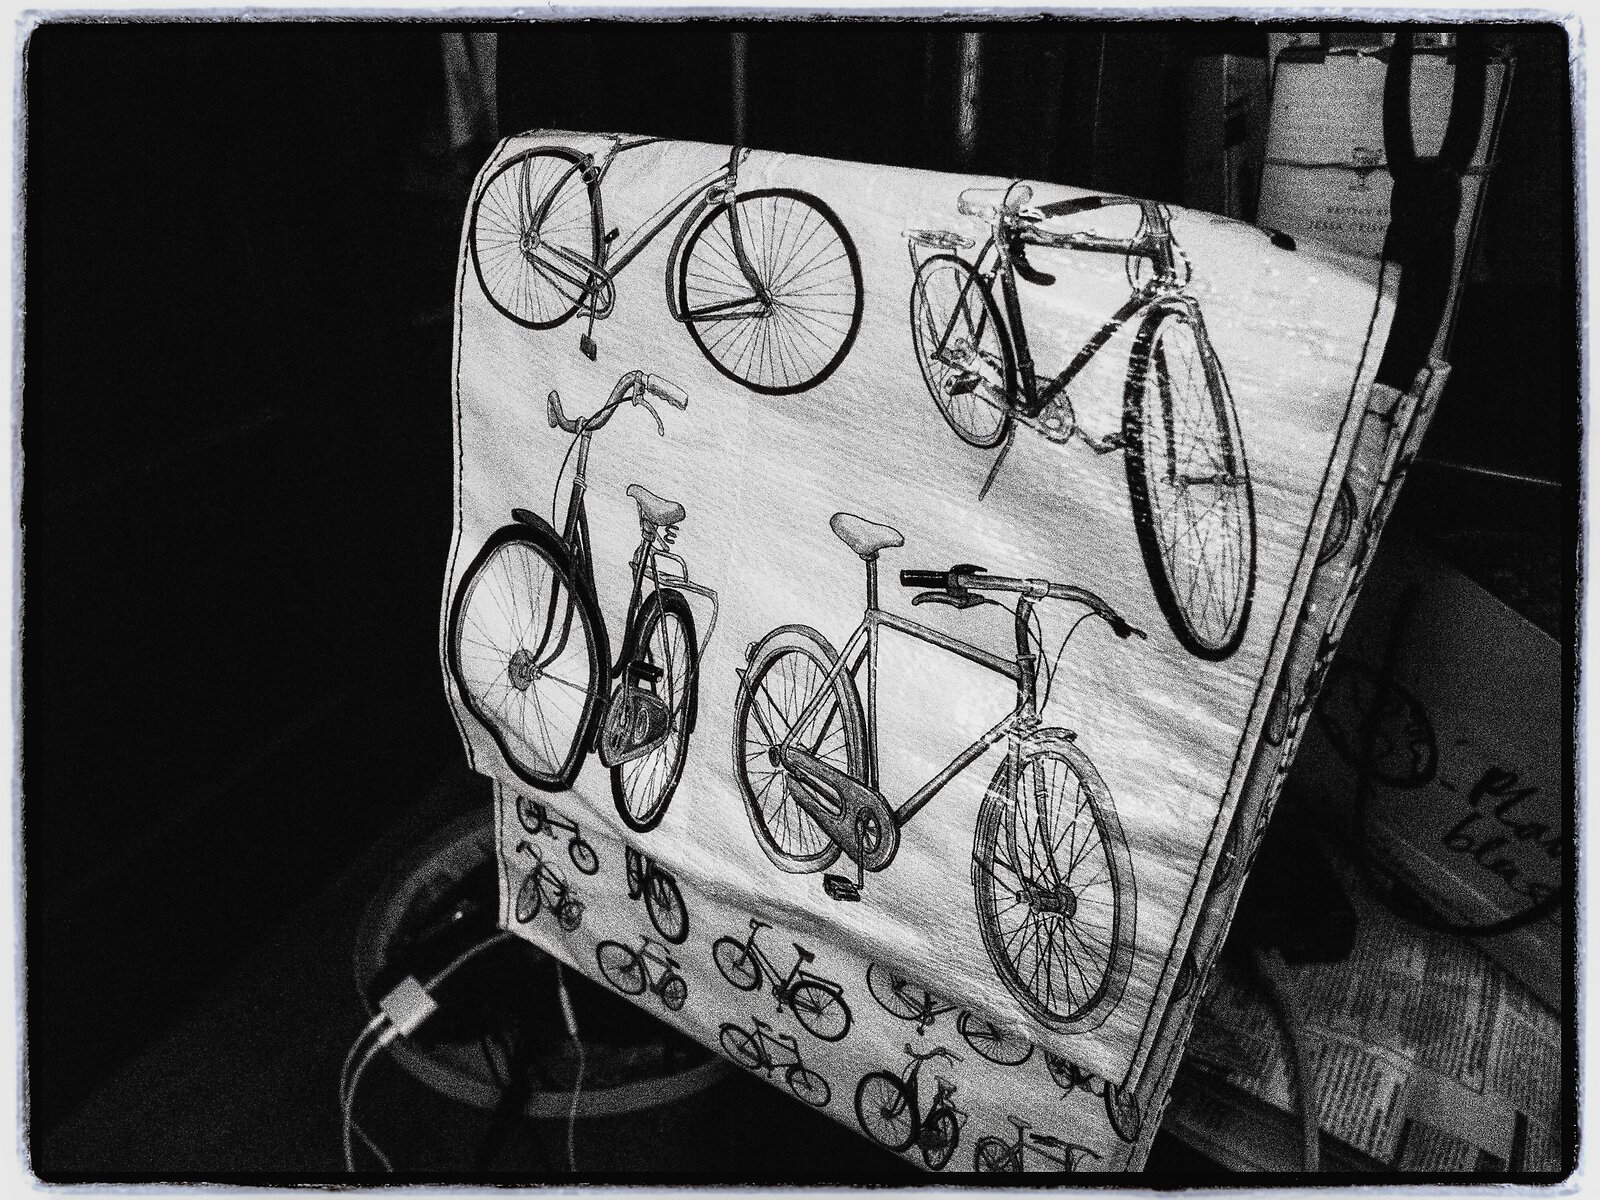 EP3_July13_Bike_bag(GrainyFilm).jpg